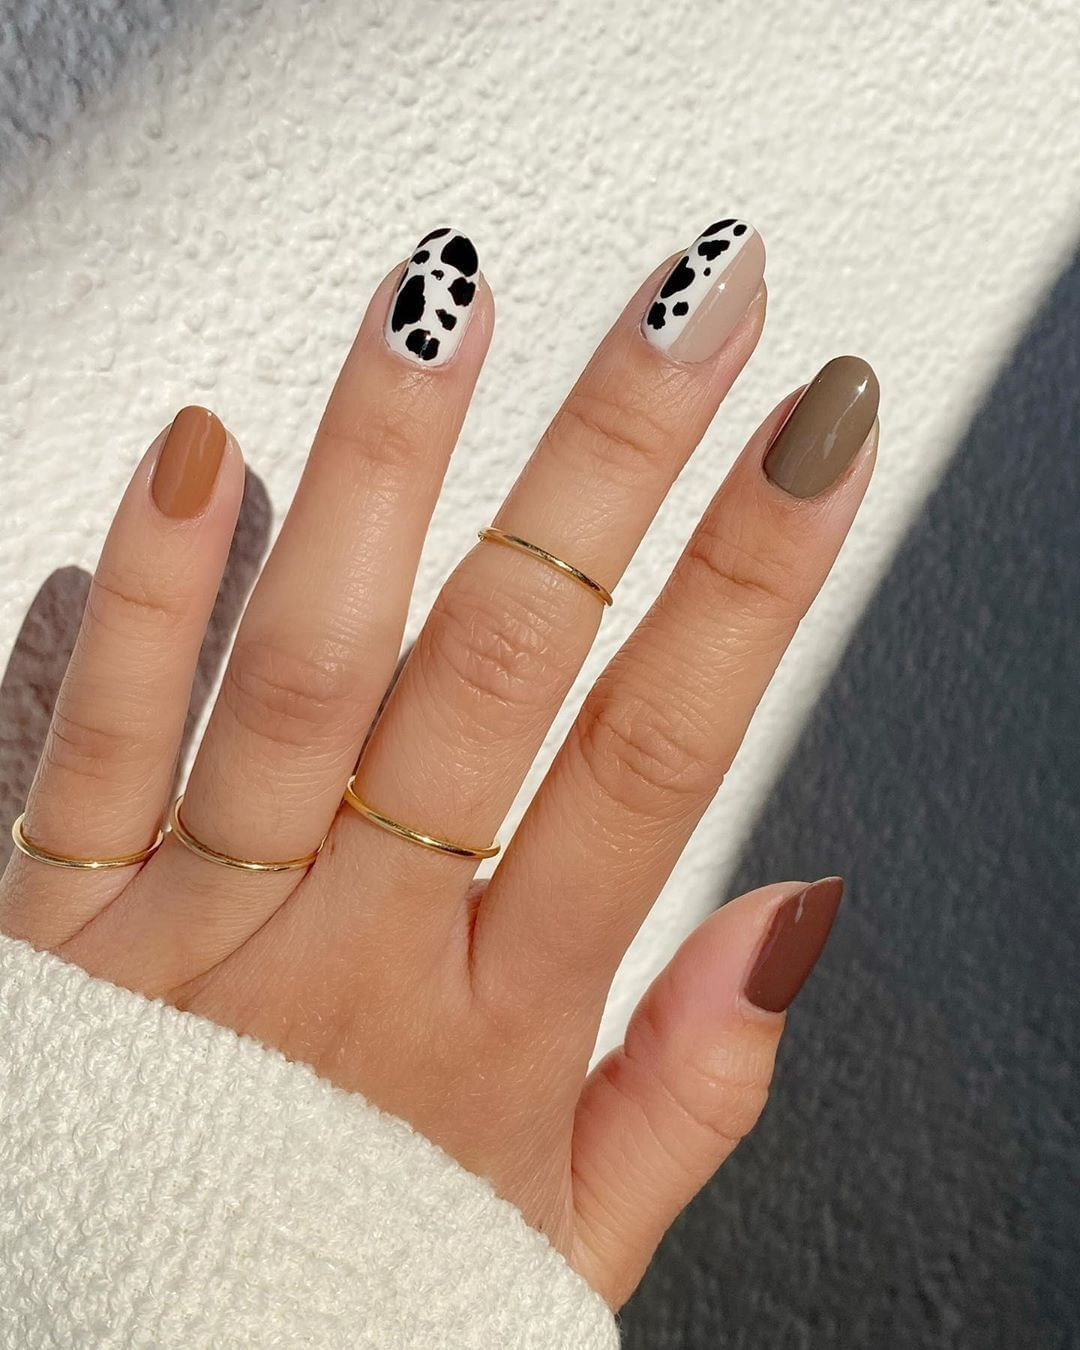 More Than Fashion On Instagram A Whole Moo D Nailartbyqueenie Sally Hansen Nail Polish In Raw Cocoa 1670844 In 2020 Cow Nails Minimal Nails Minimalist Nails